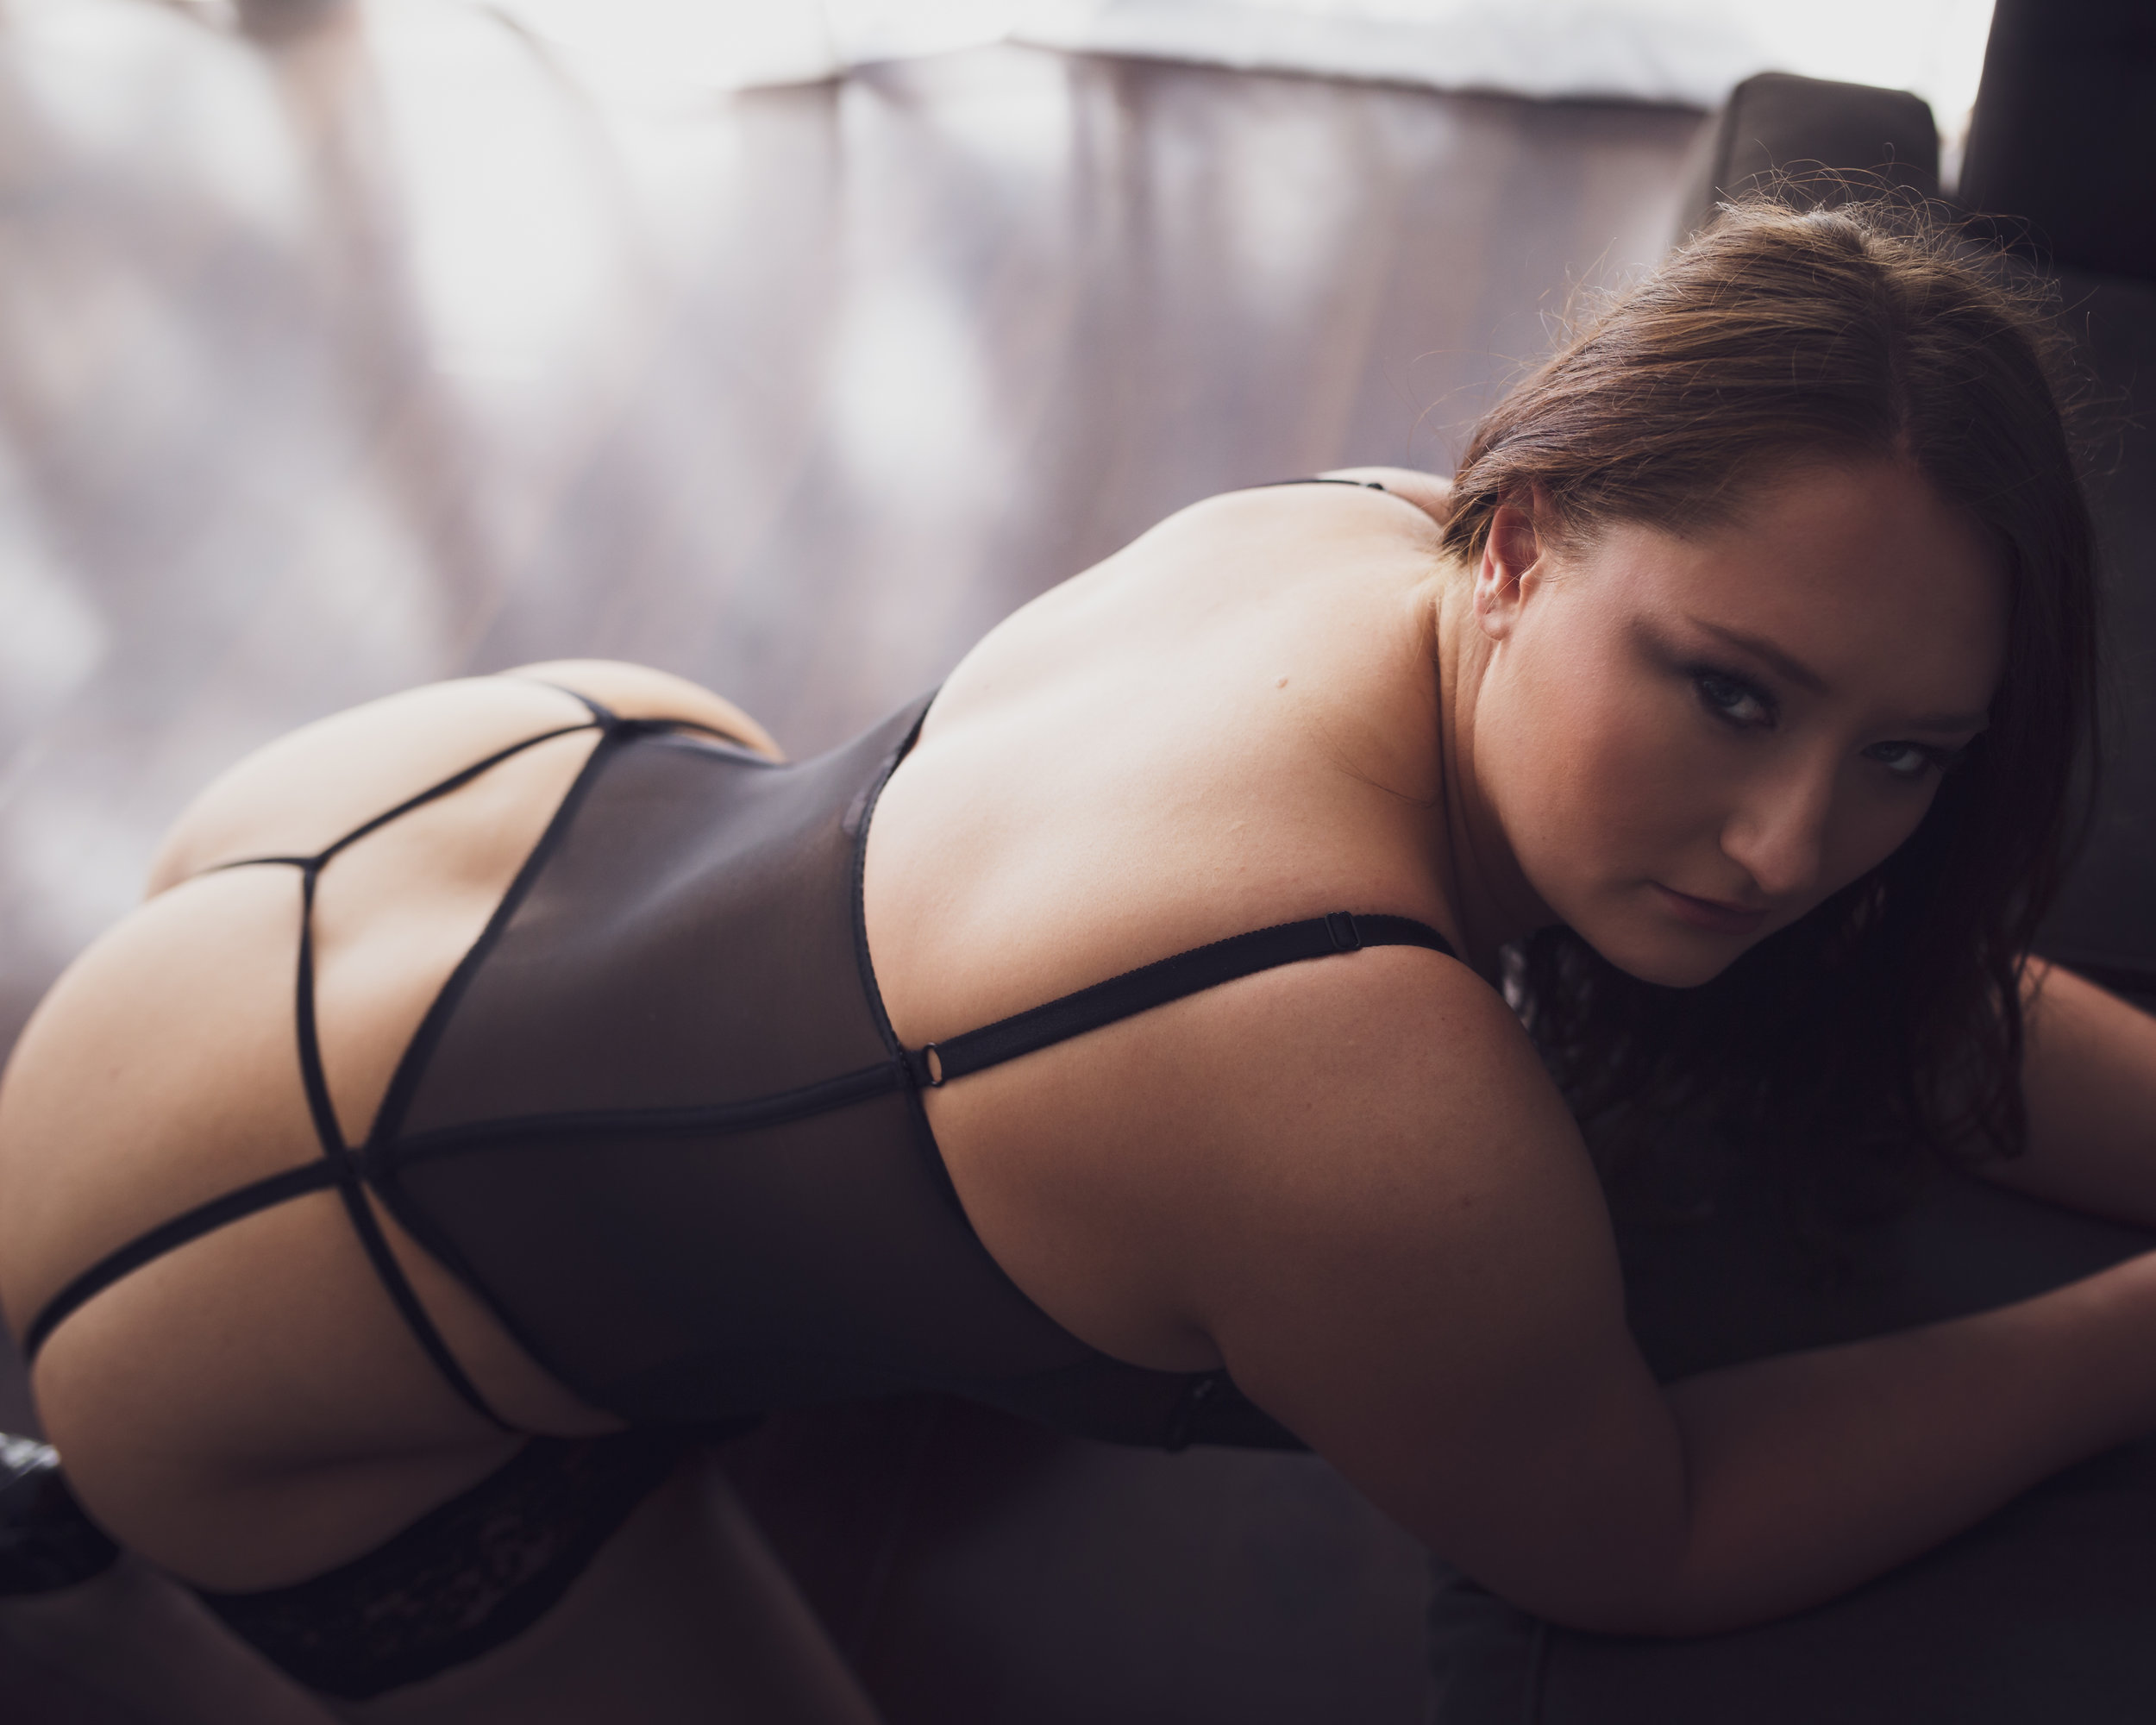 Nine19 Photography Raleigh NC Boudoir Photographer-6365.jpg